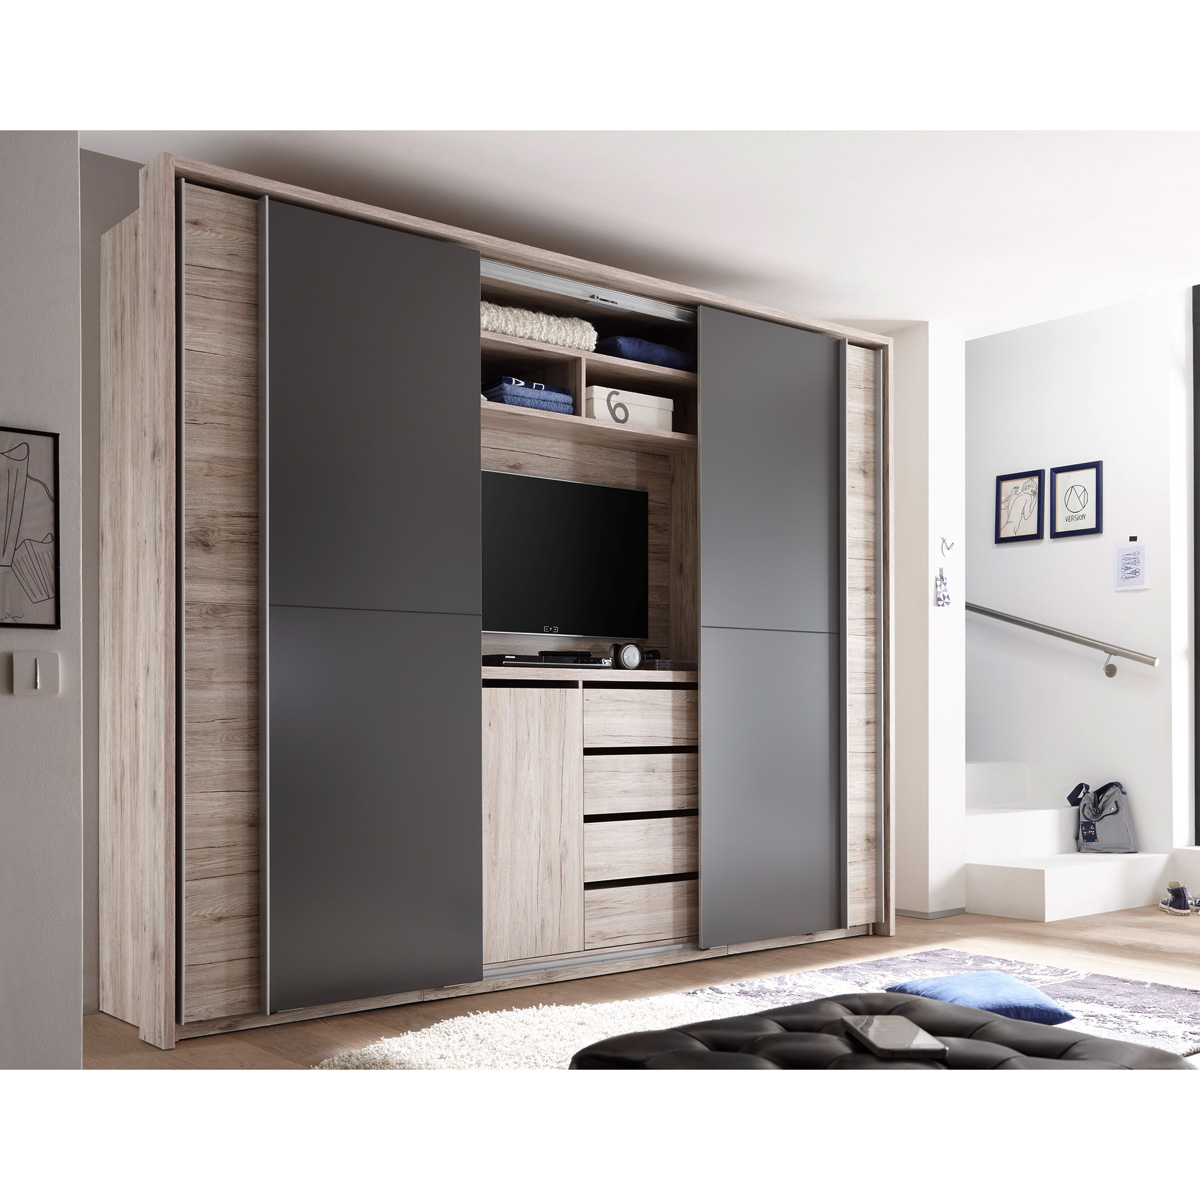 schwebet renschrank cinema schrank kleiderschrank in sandeiche lava mit tv fach eur 798 95. Black Bedroom Furniture Sets. Home Design Ideas